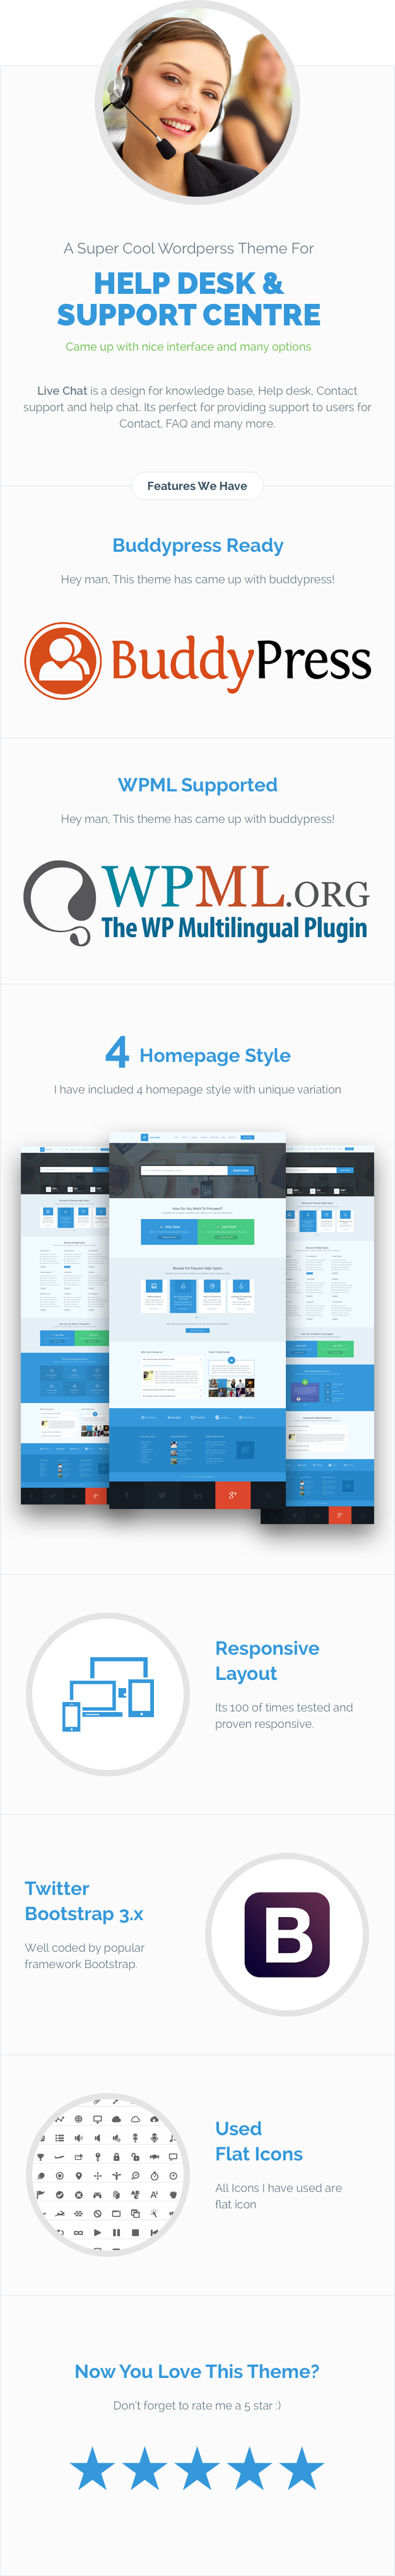 Live Chat - Helpdesk Responsive Wordpress Theme